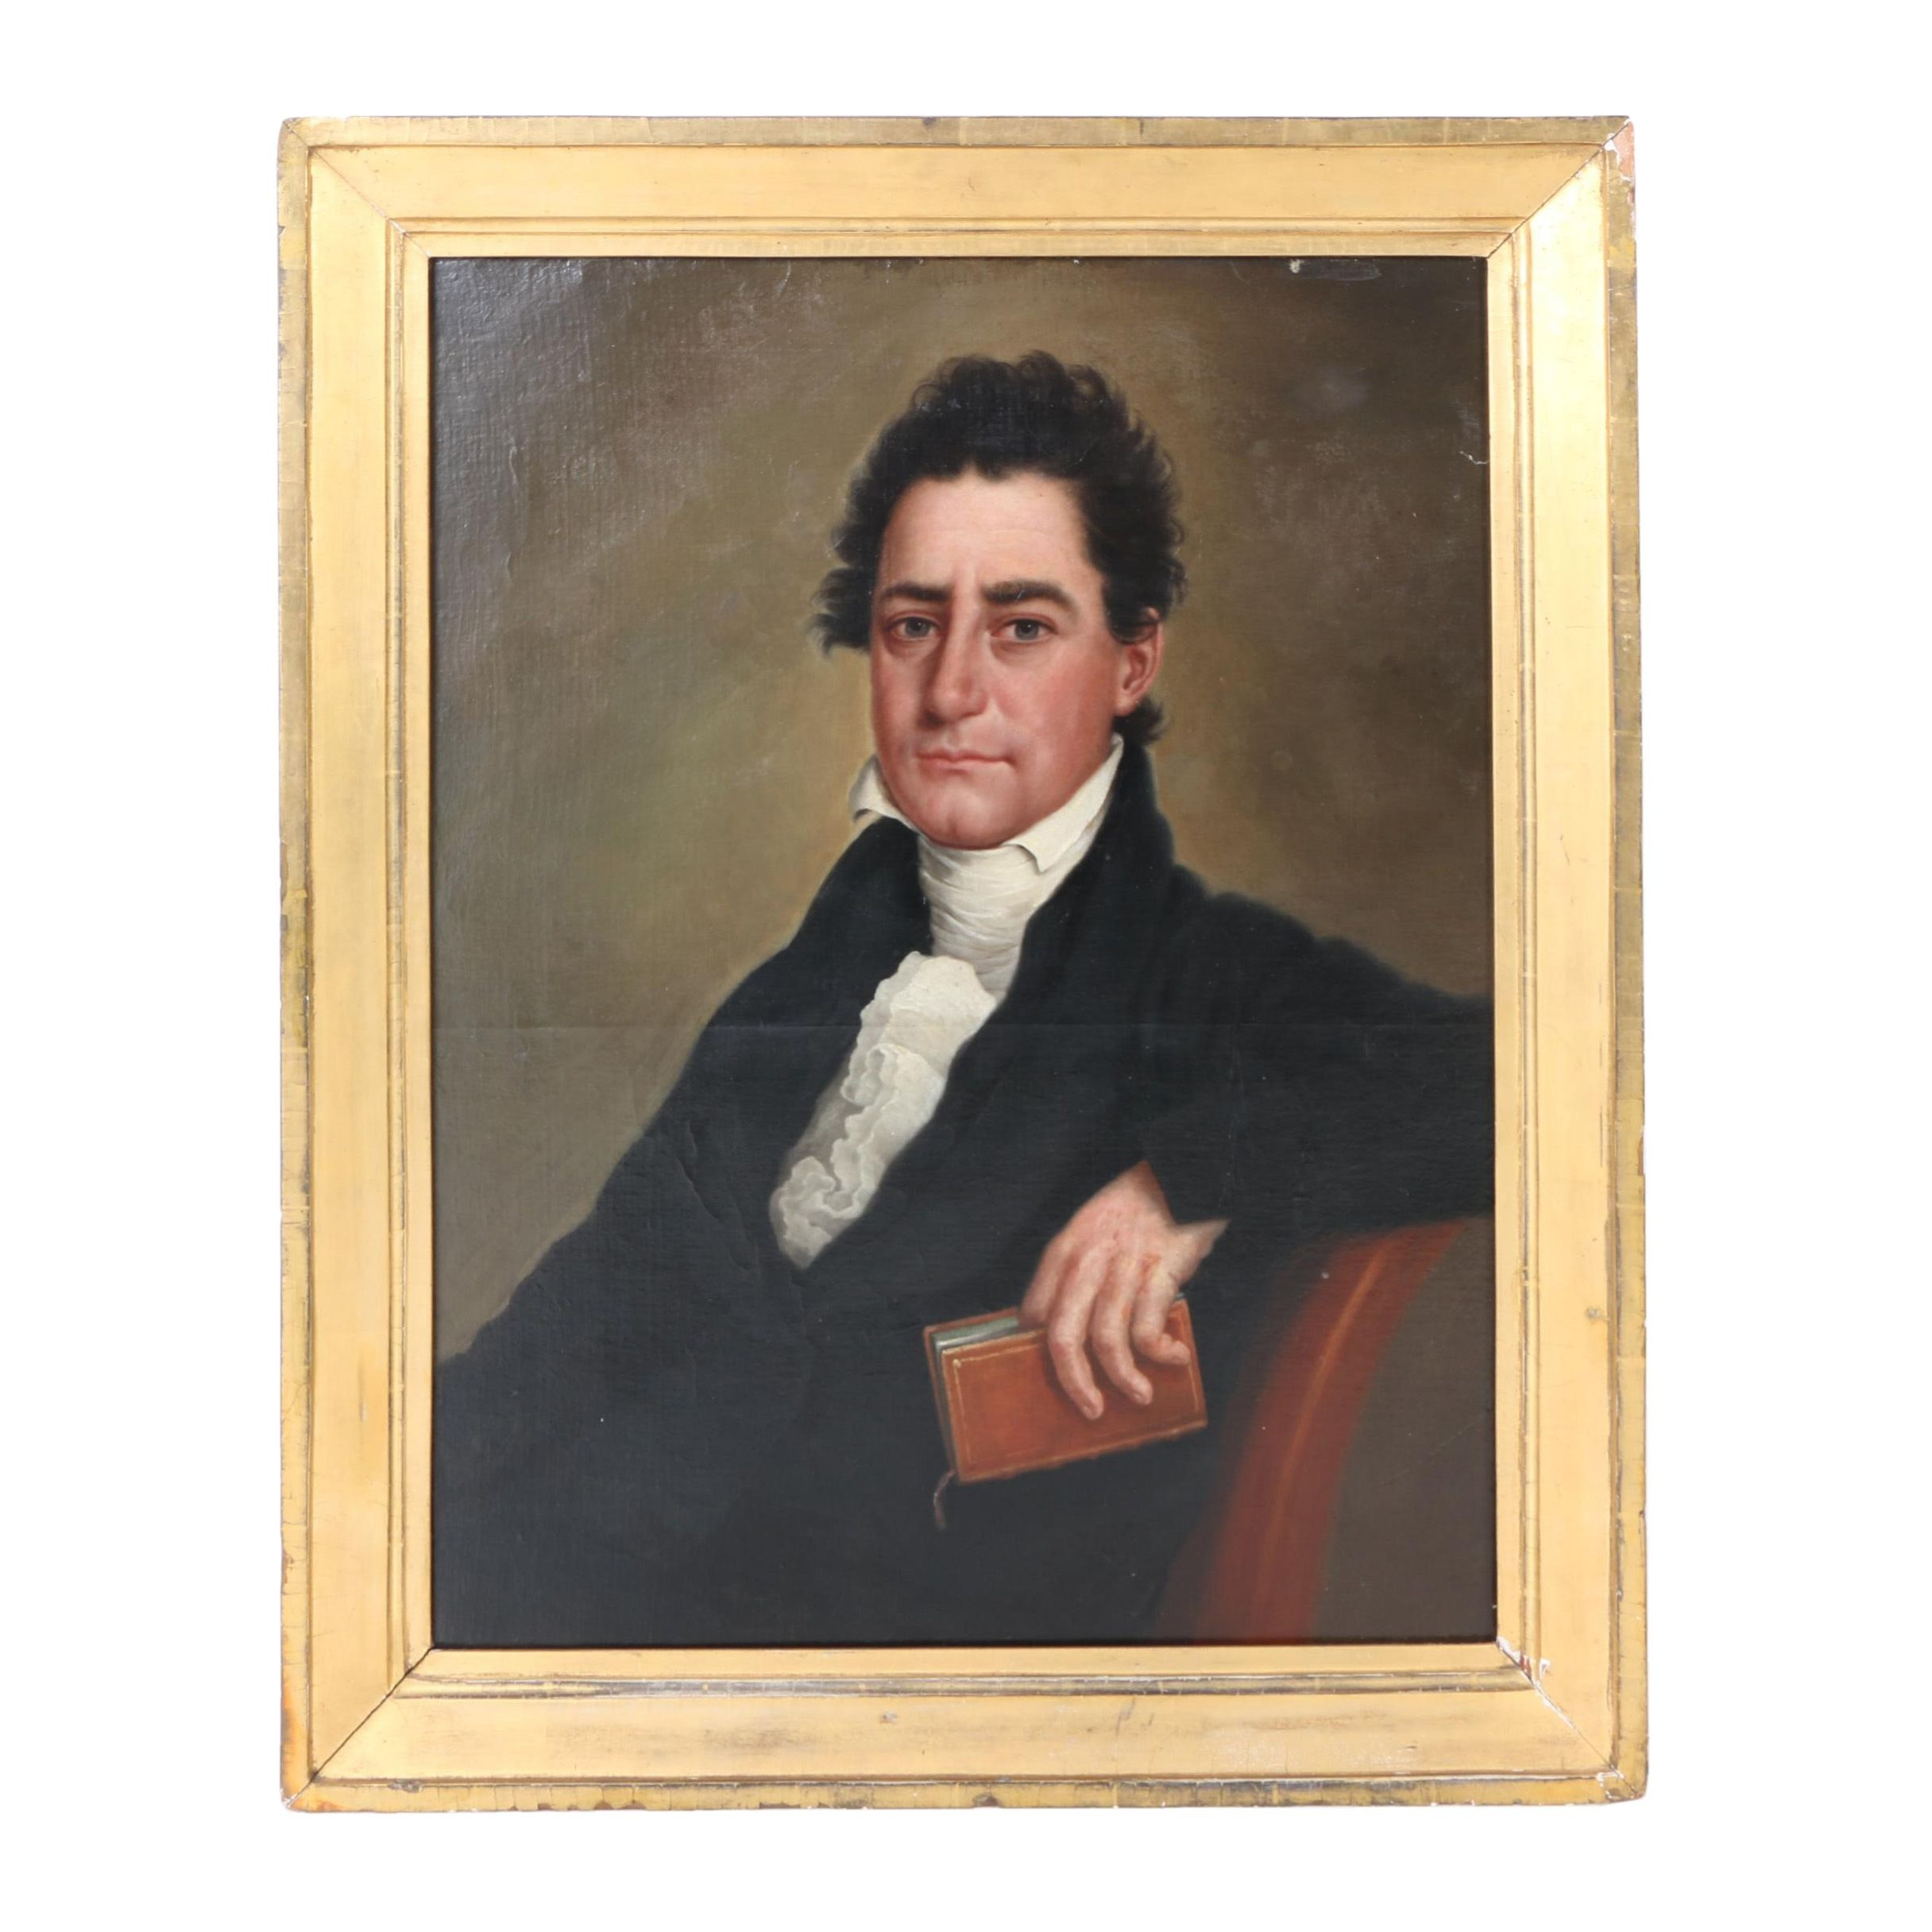 Antique Oil Portrait Painting on Canvas of Thomas D. Anderson